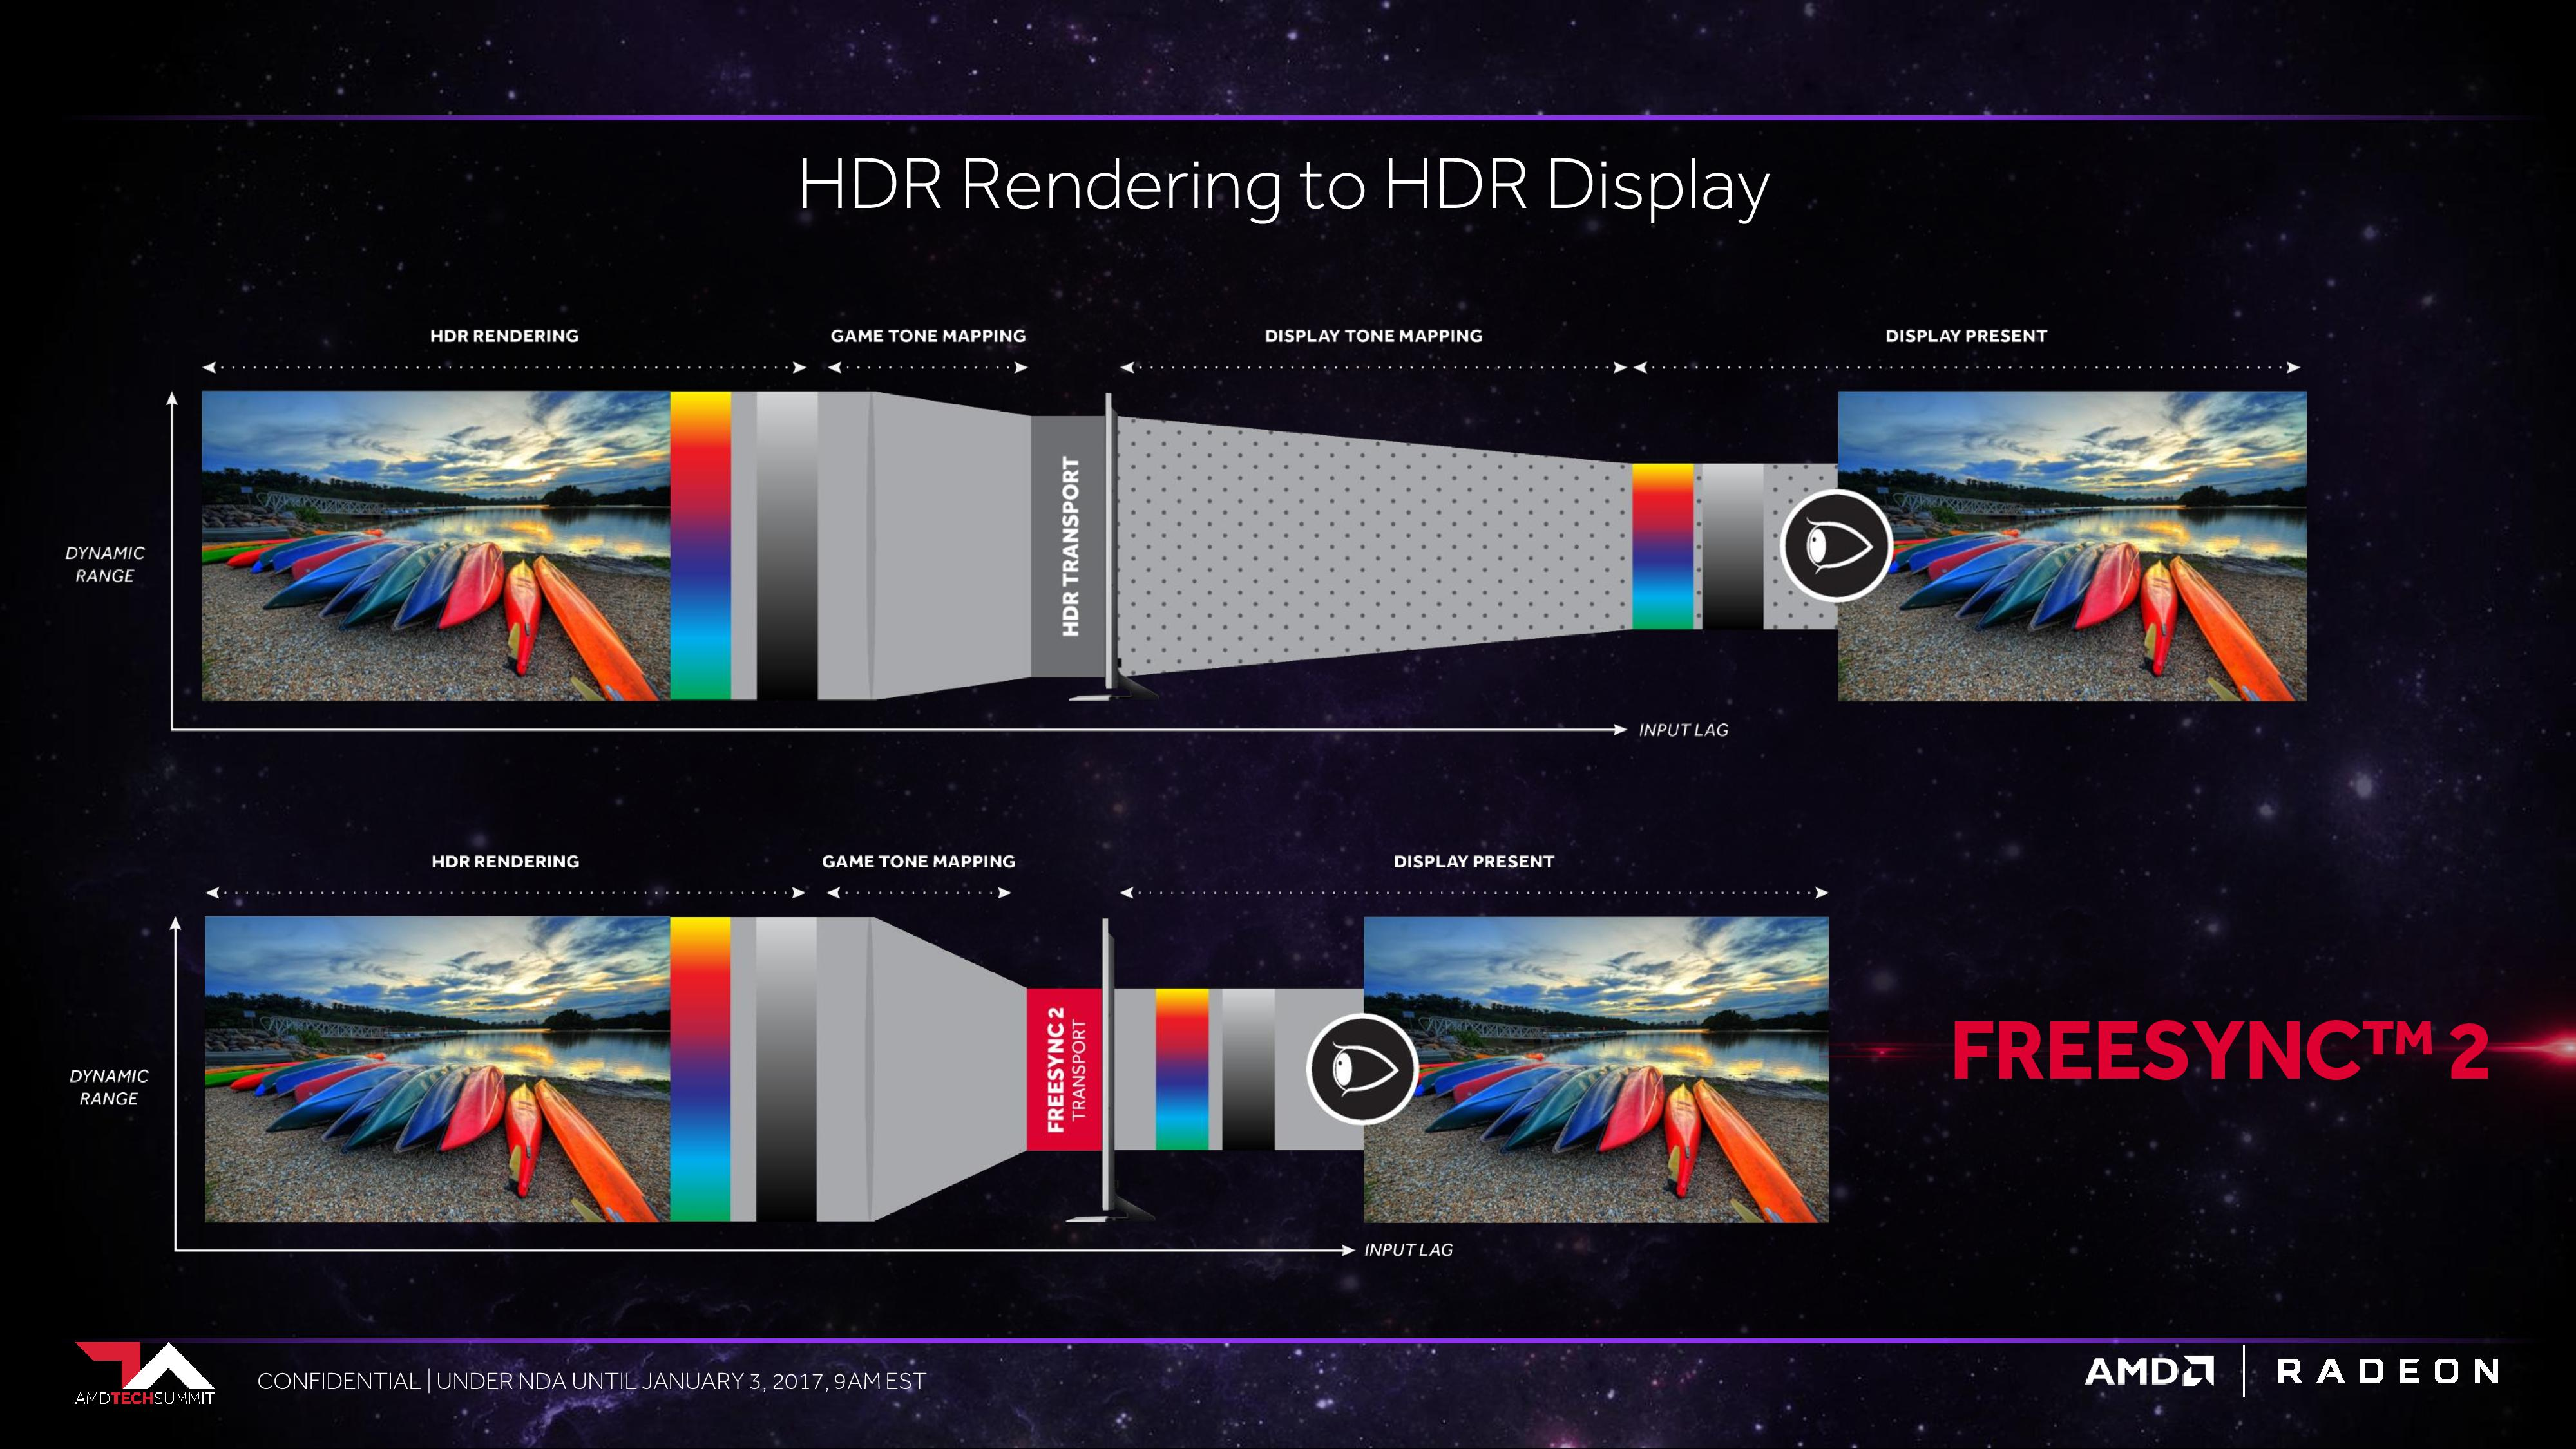 AMD's FreeSync 2 brings smooth HDR gaming to PC | Ars Technica